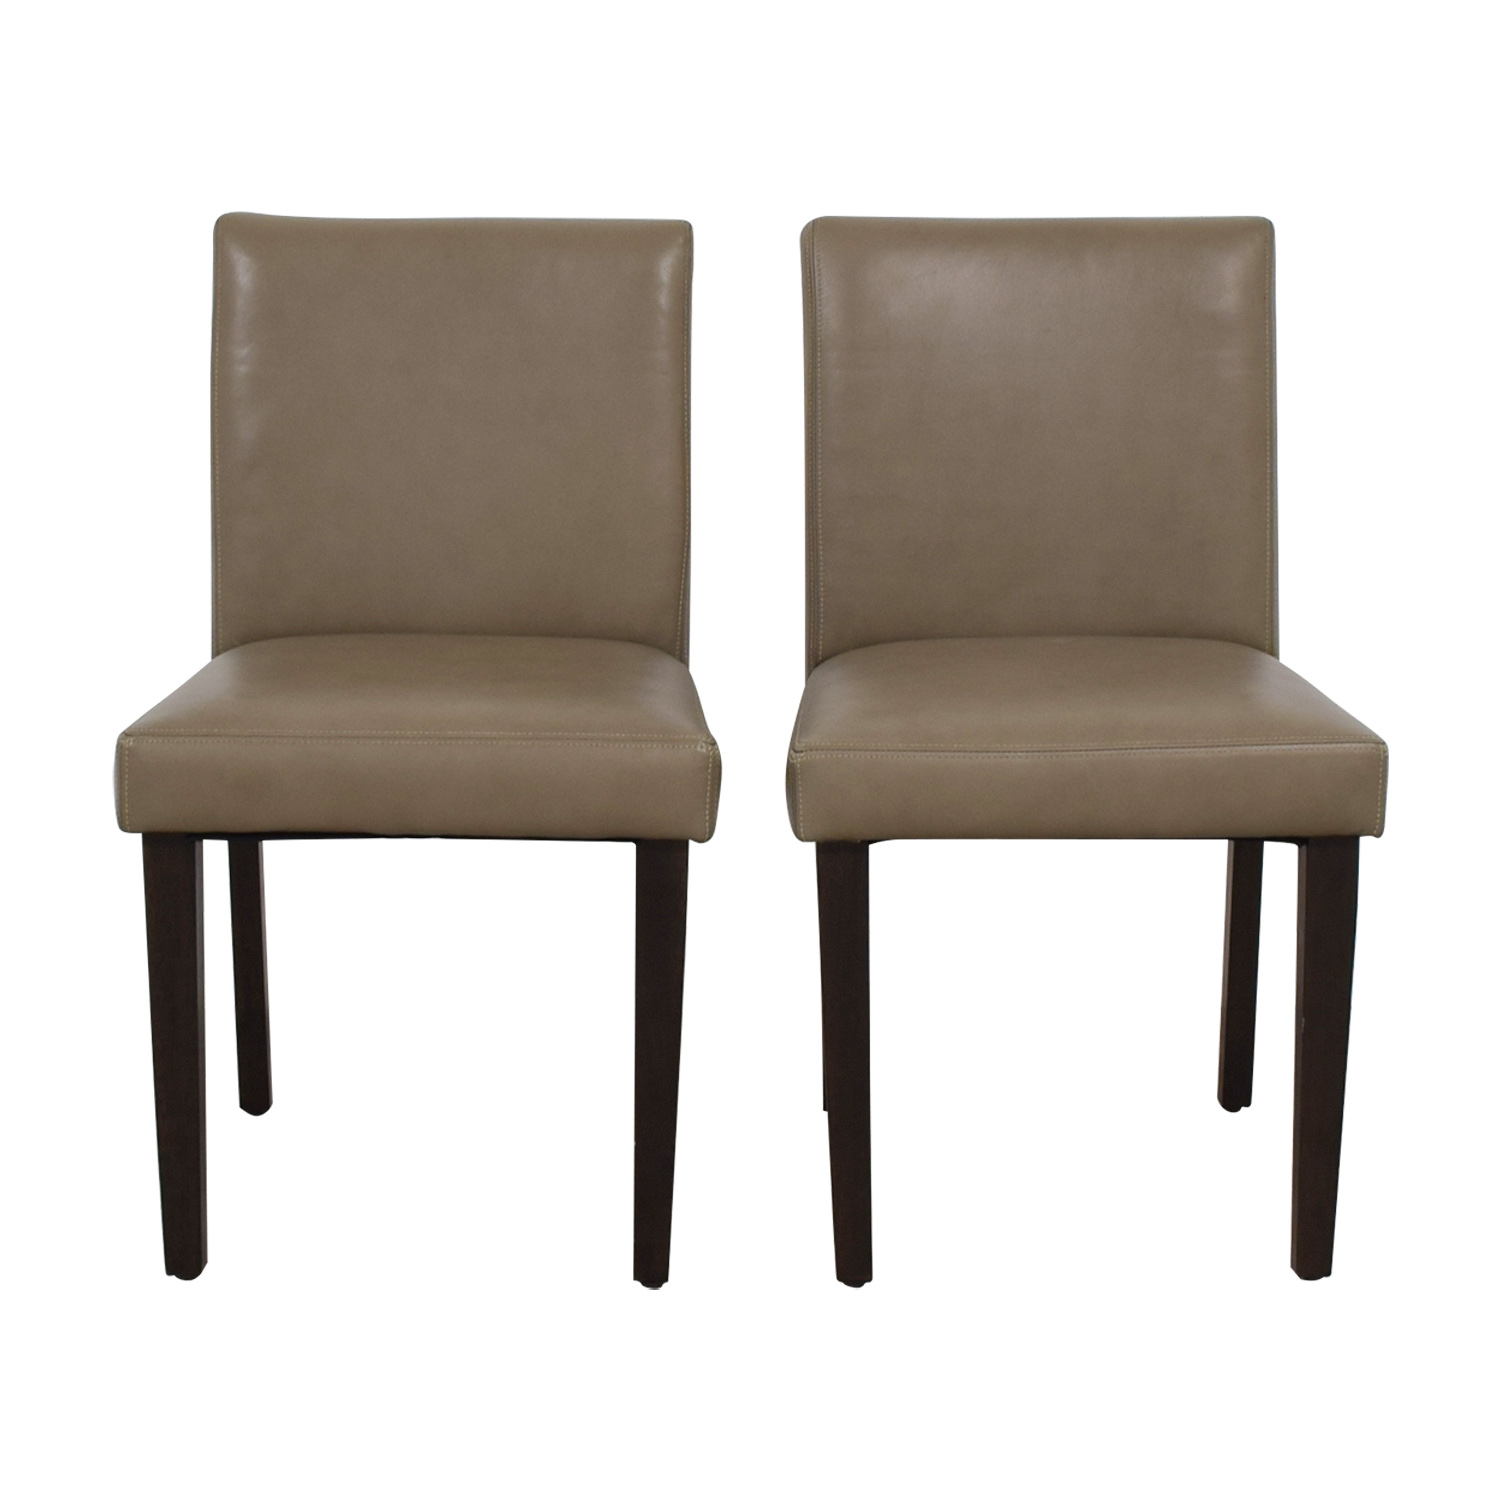 West Elm Porter Taupe Leather Dining Chairs sale